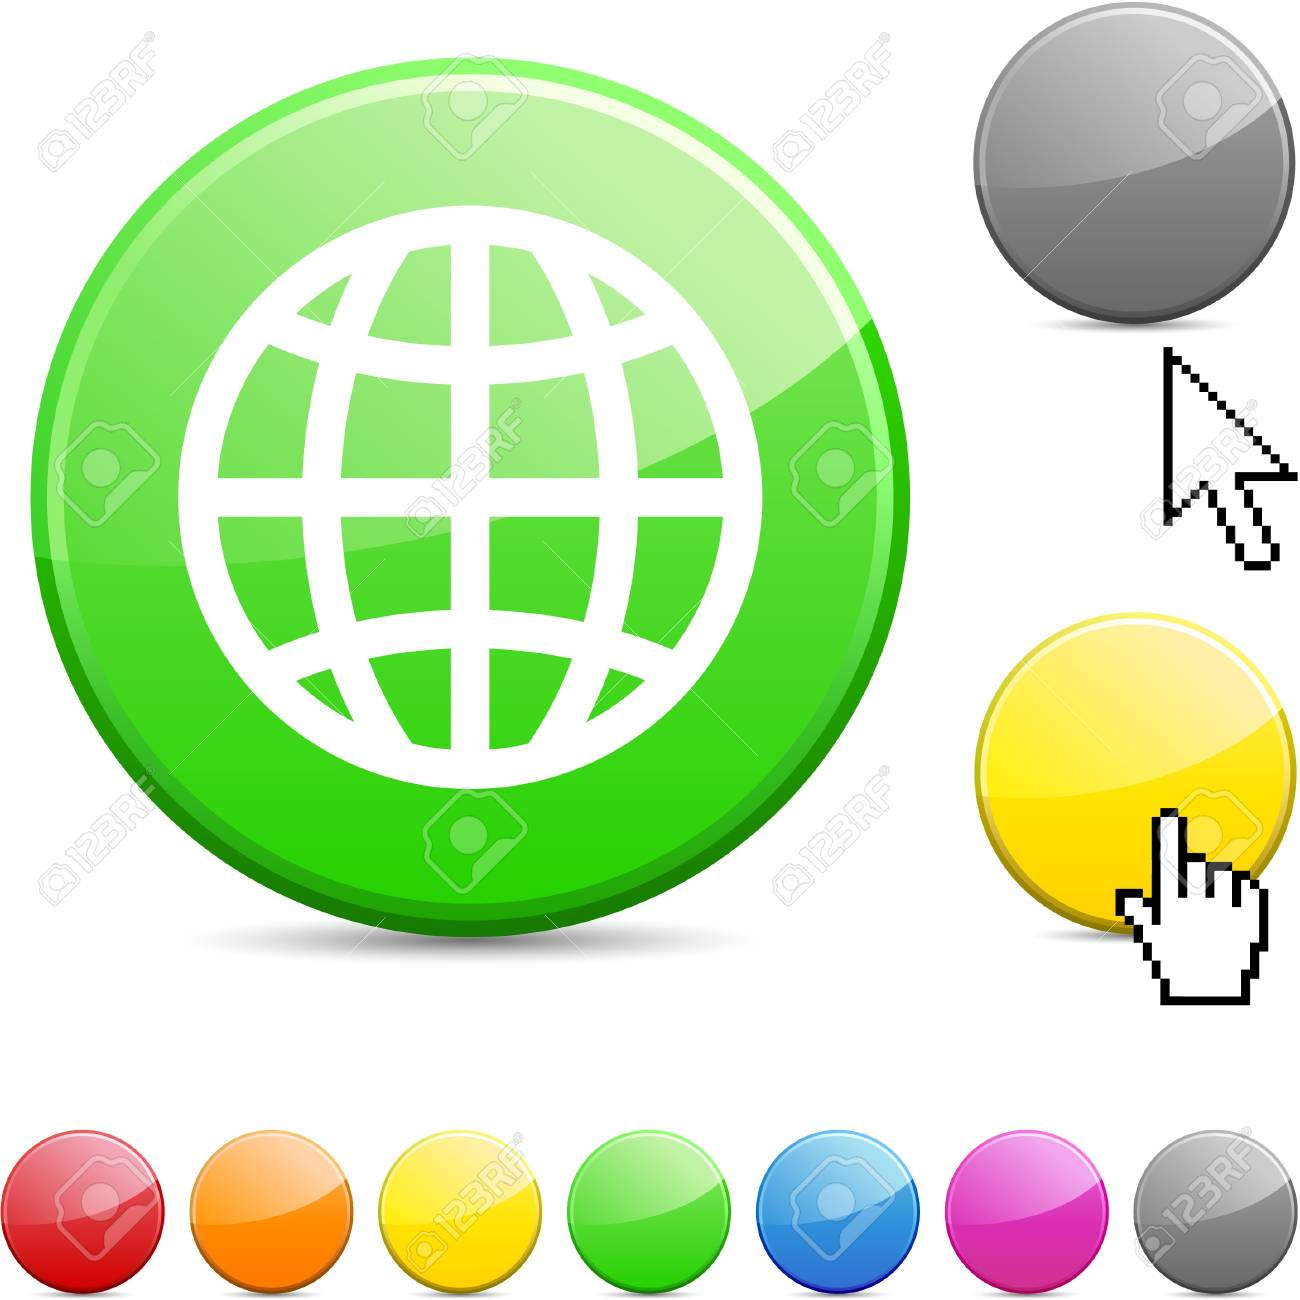 Earth glossy vibrant round icon. Stock Vector - 7156268